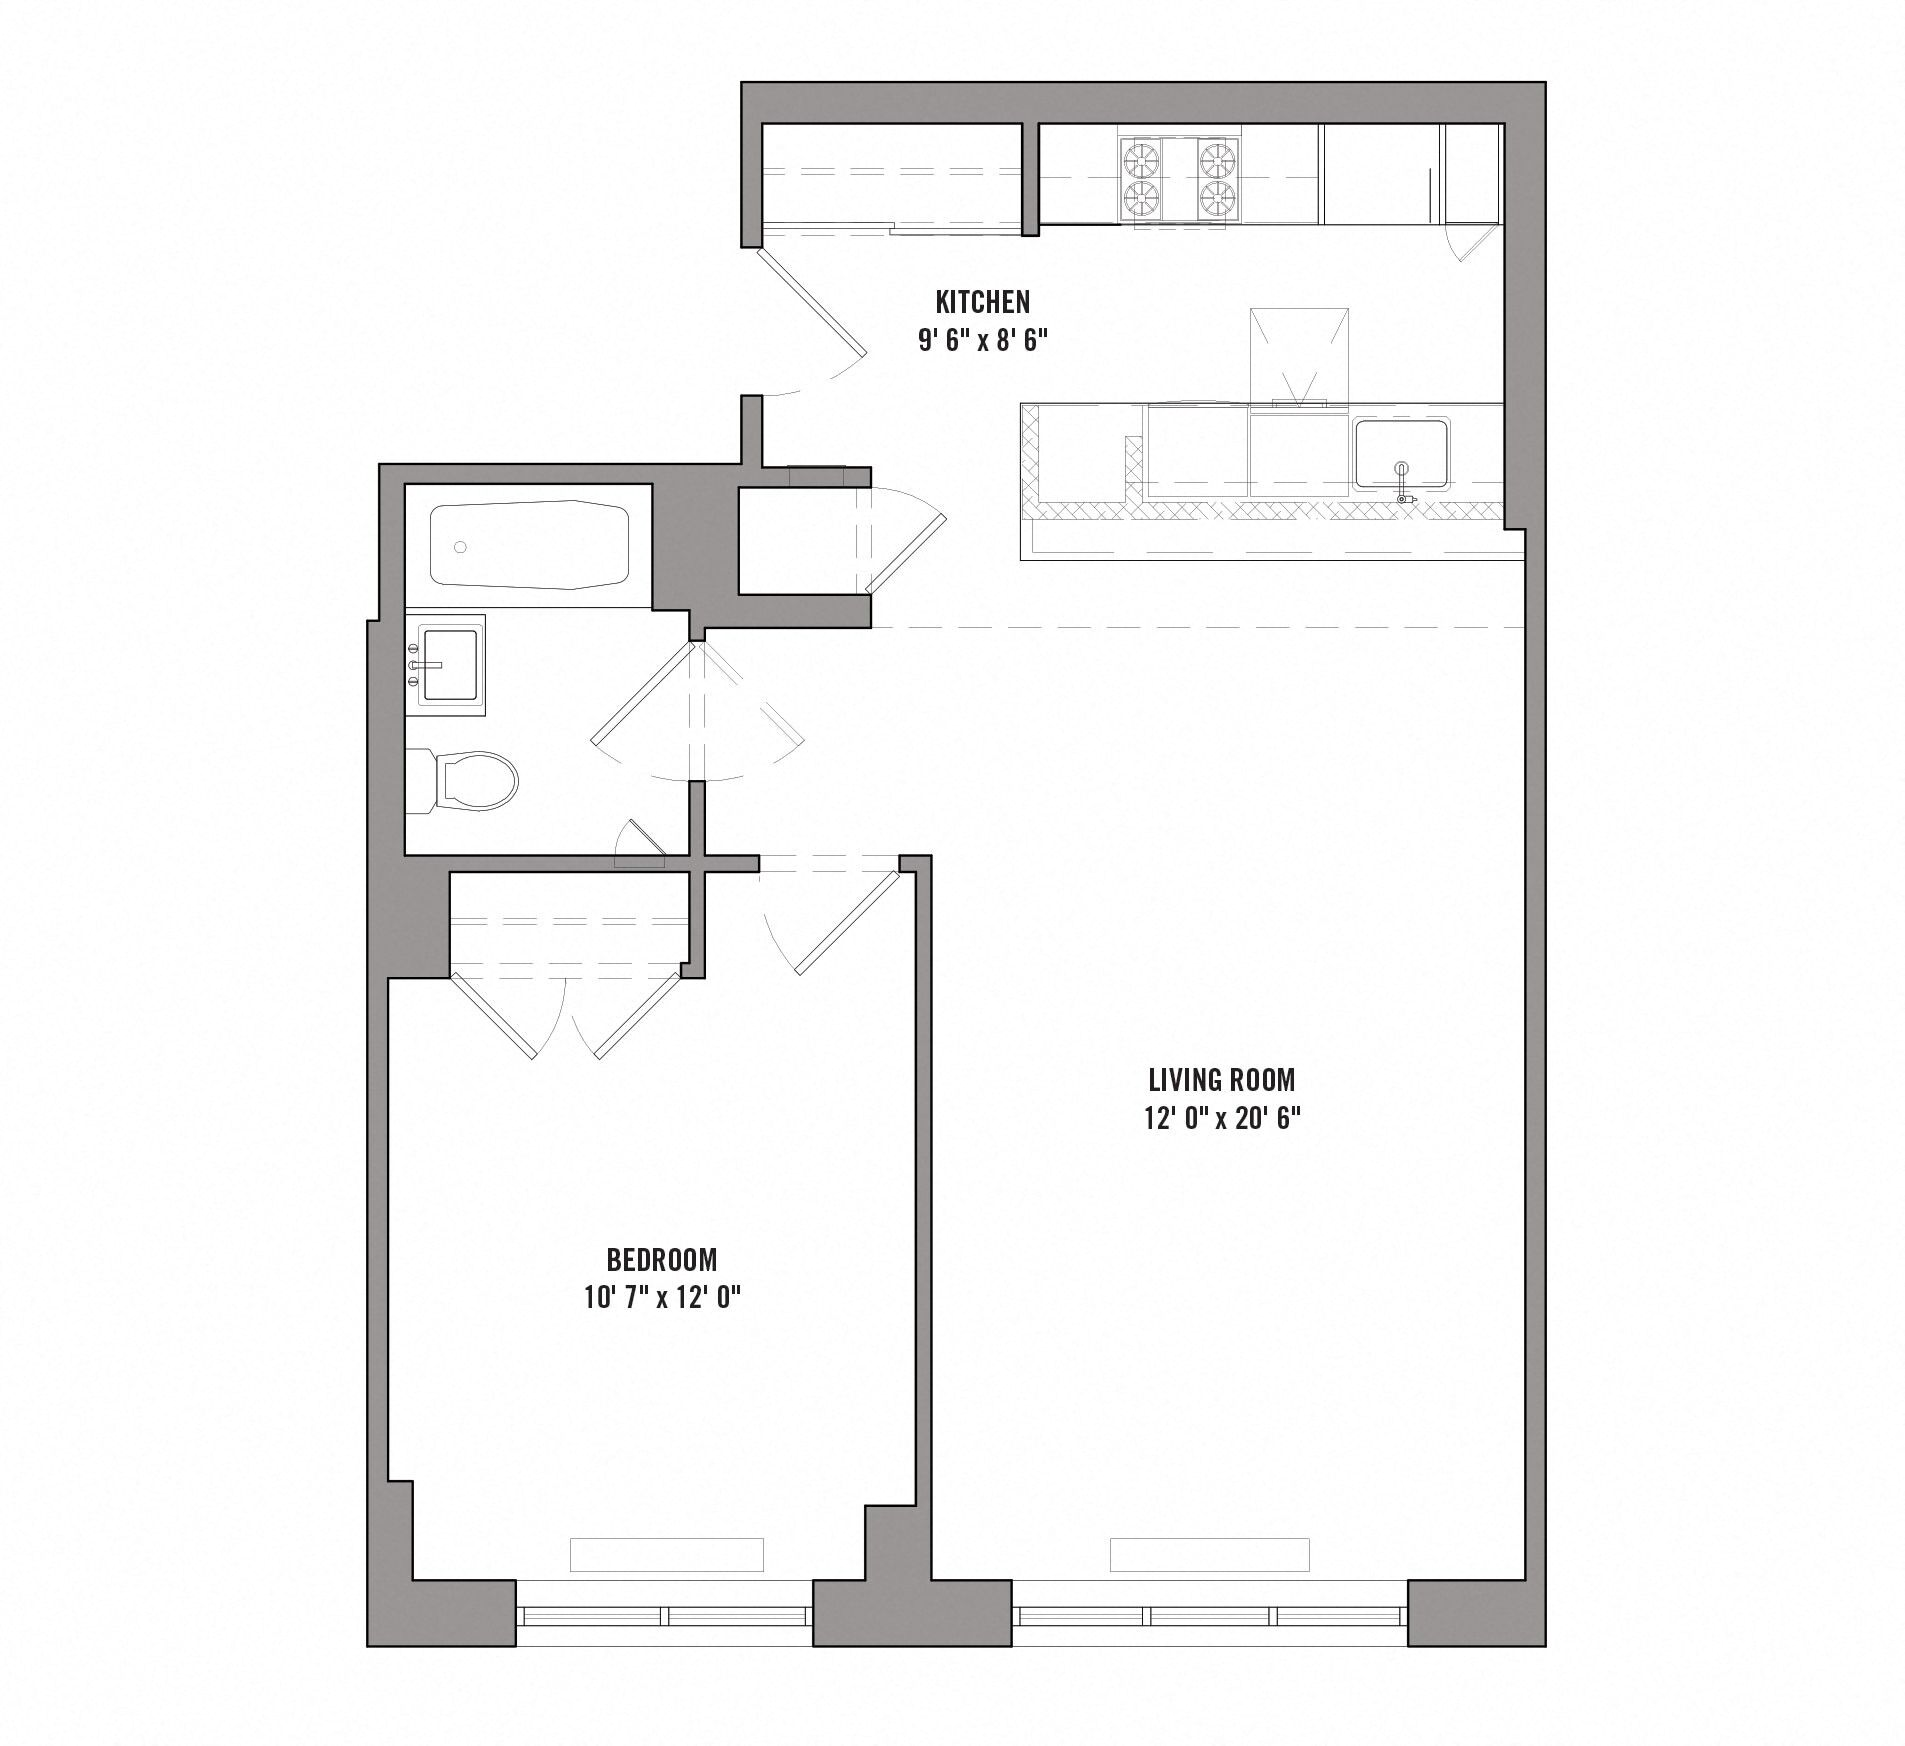 Floor plan diagram for unit B 3 30. 1 bedroom, 1 bathroom apartment with kitchen and living room.